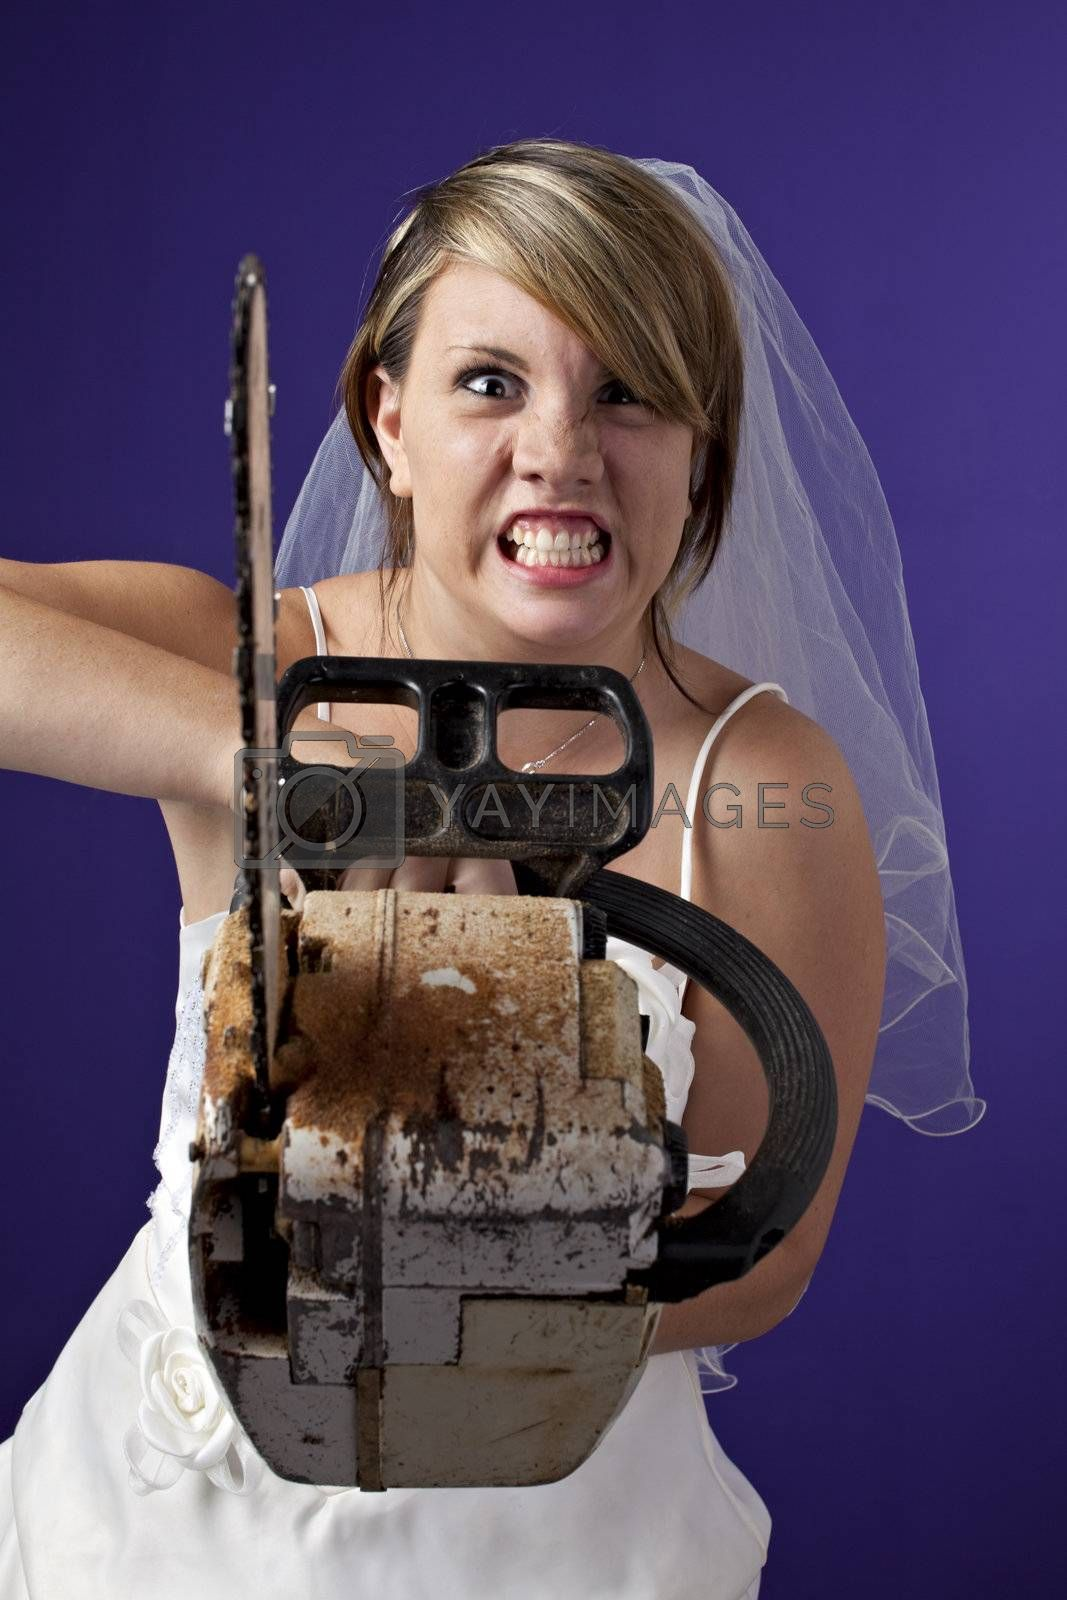 angry young bride with an chainsaw on a dark blue background